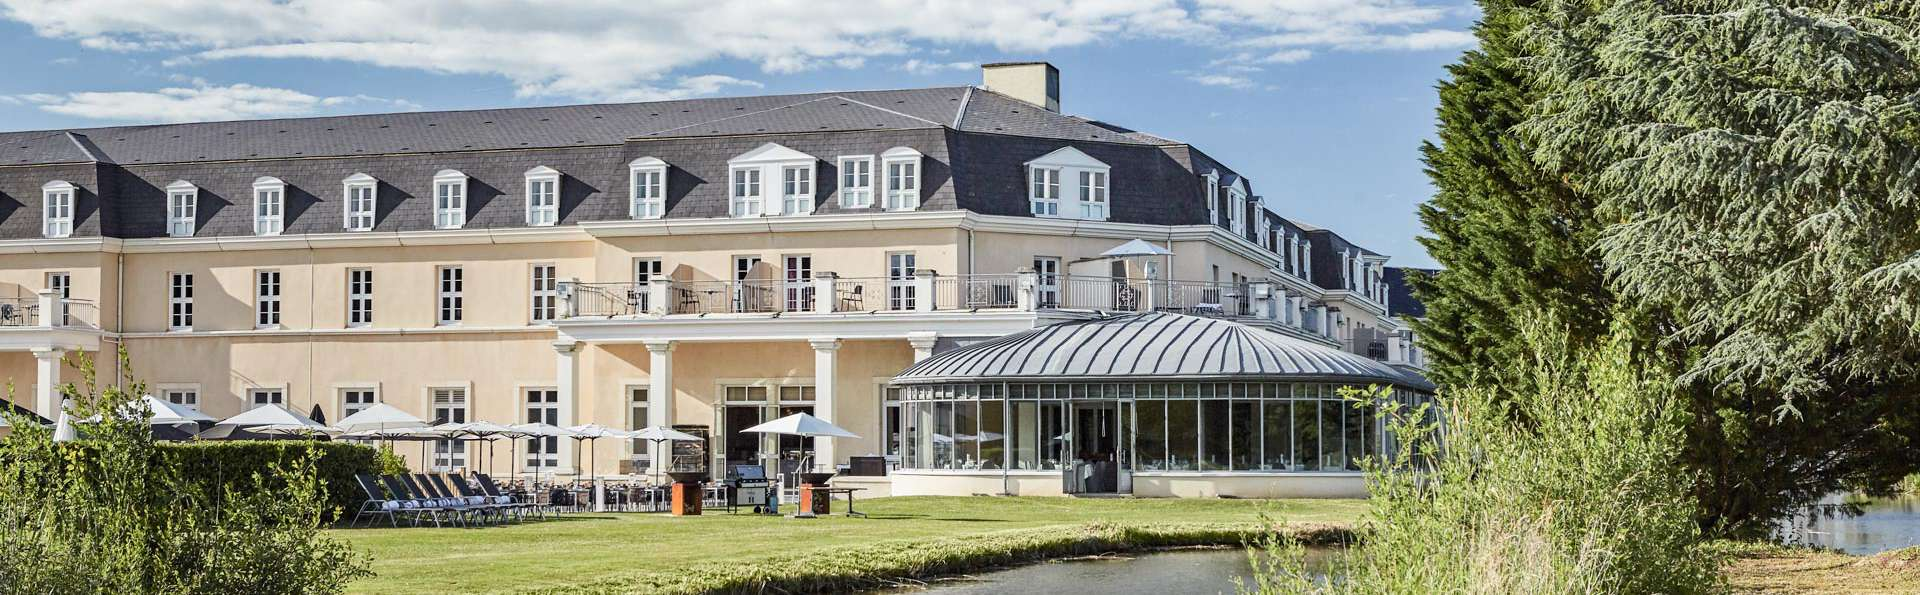 Mercure Chantilly Resort & Conventions - EDIT_N2_FRONT_02.jpg